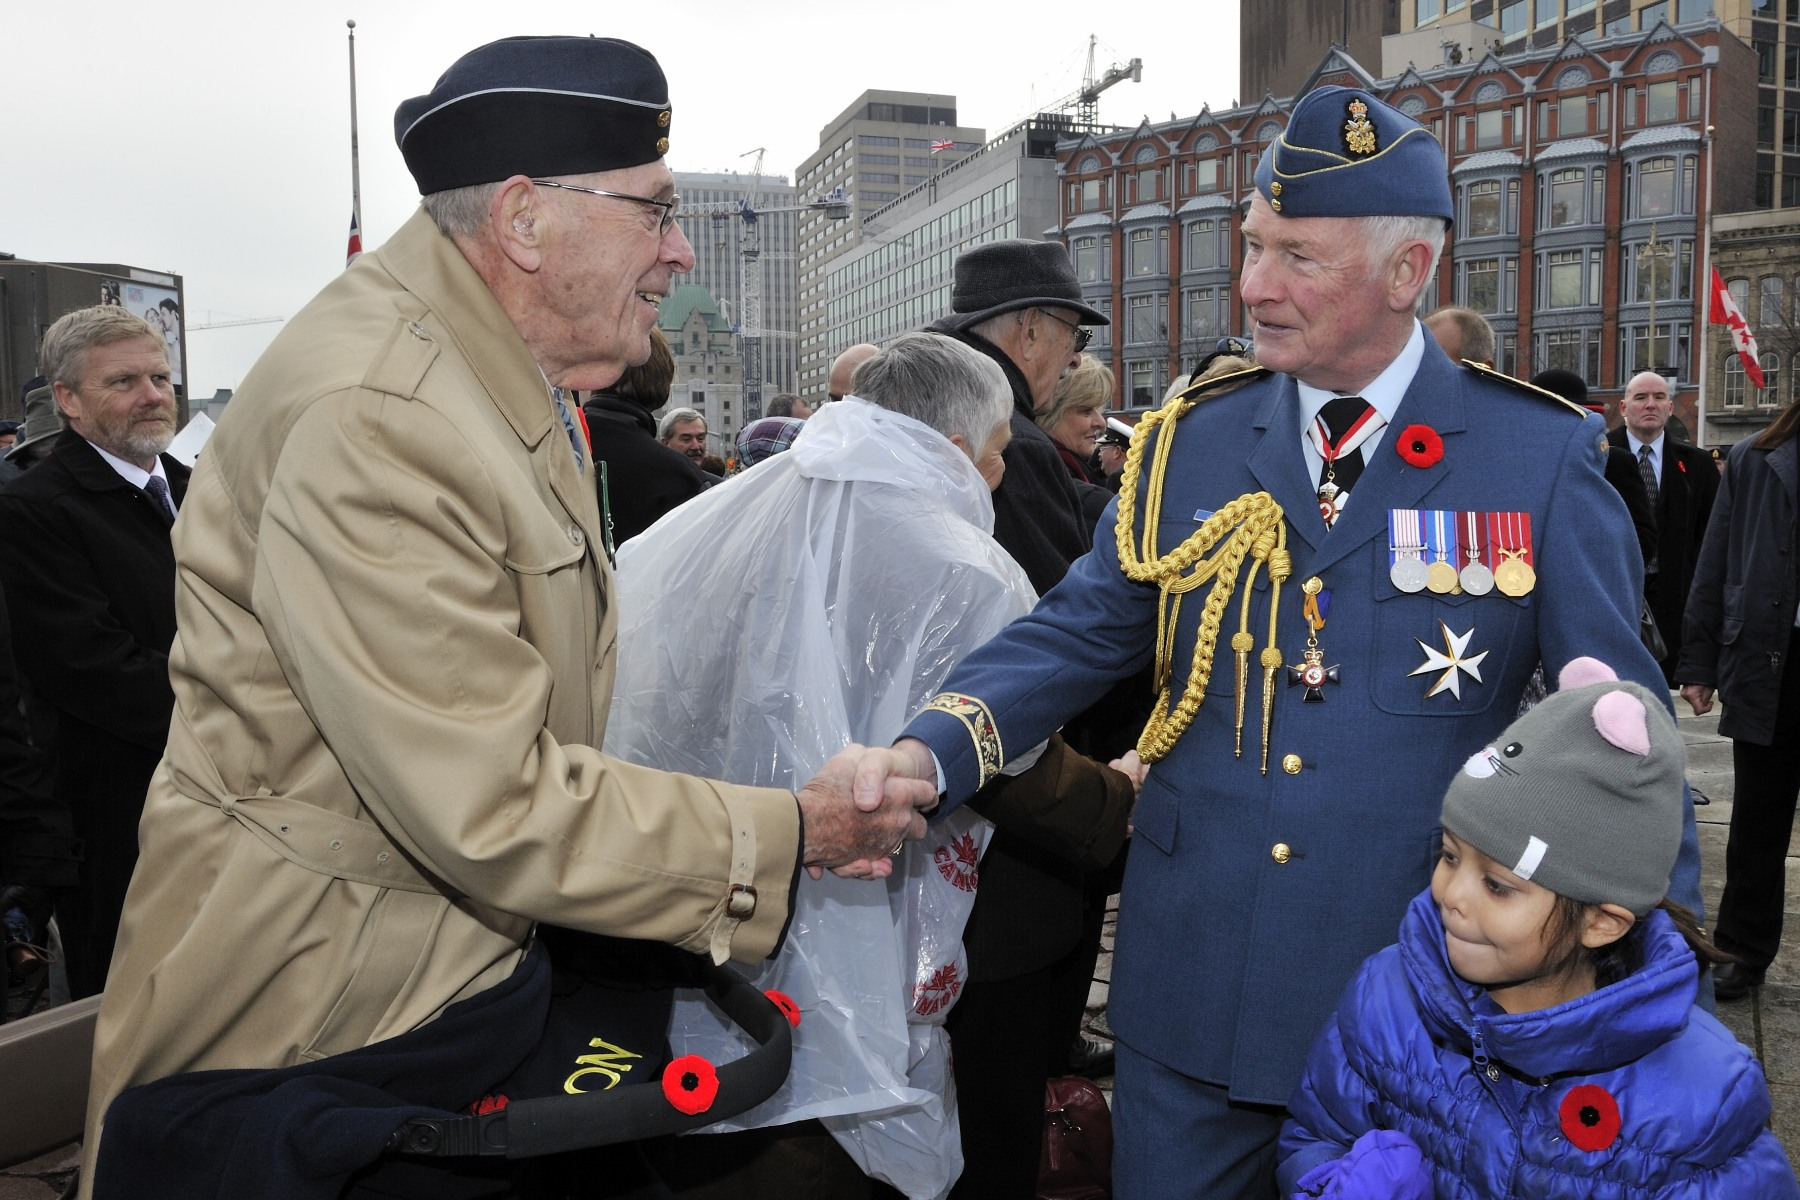 His Excellency took the time to speak with veterans and personally thank them for their service to our country.